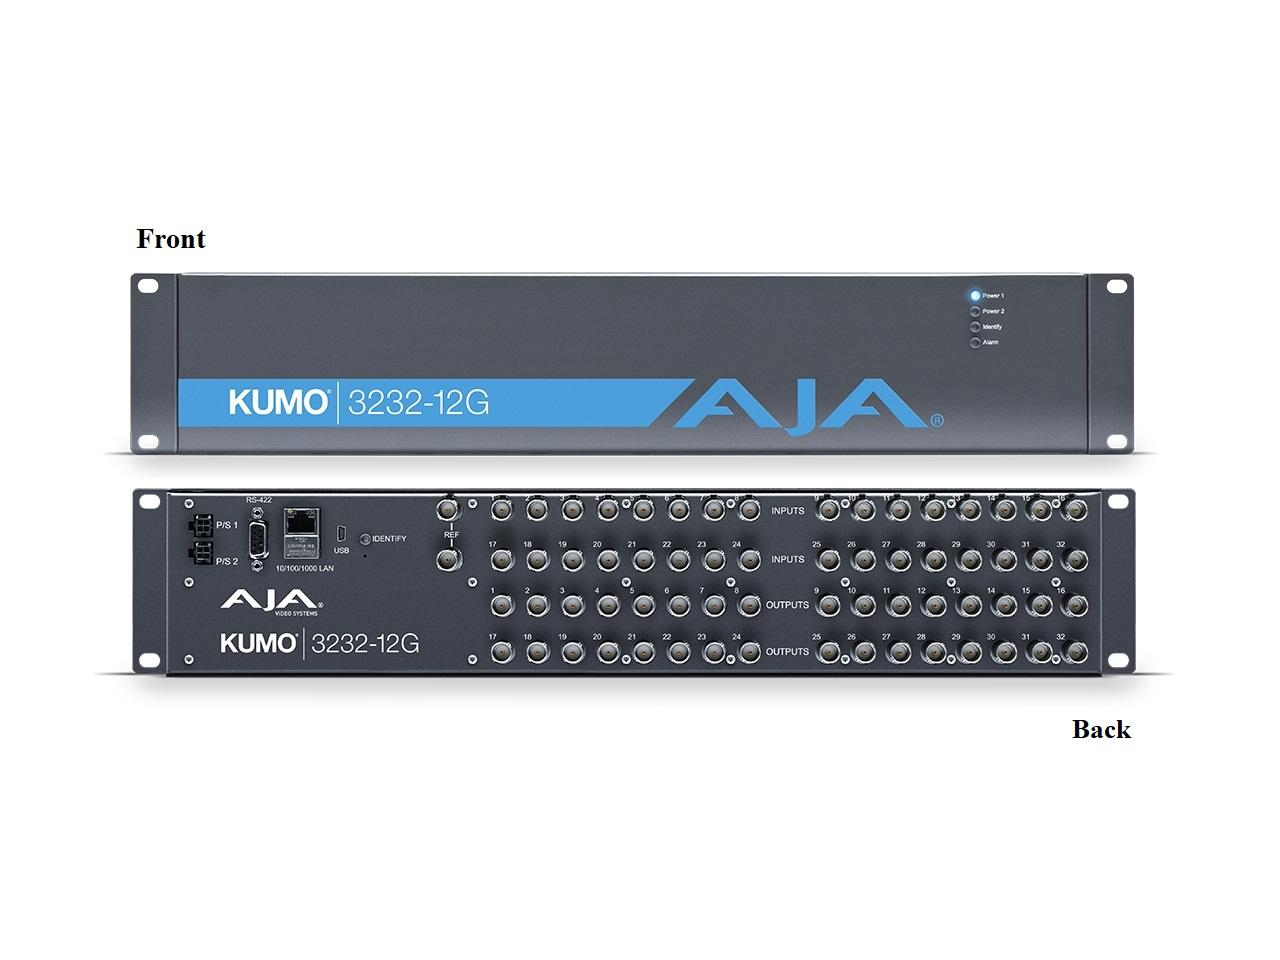 KUMO 3232-12G Compact 32x32 12G-SDI Router by AJA